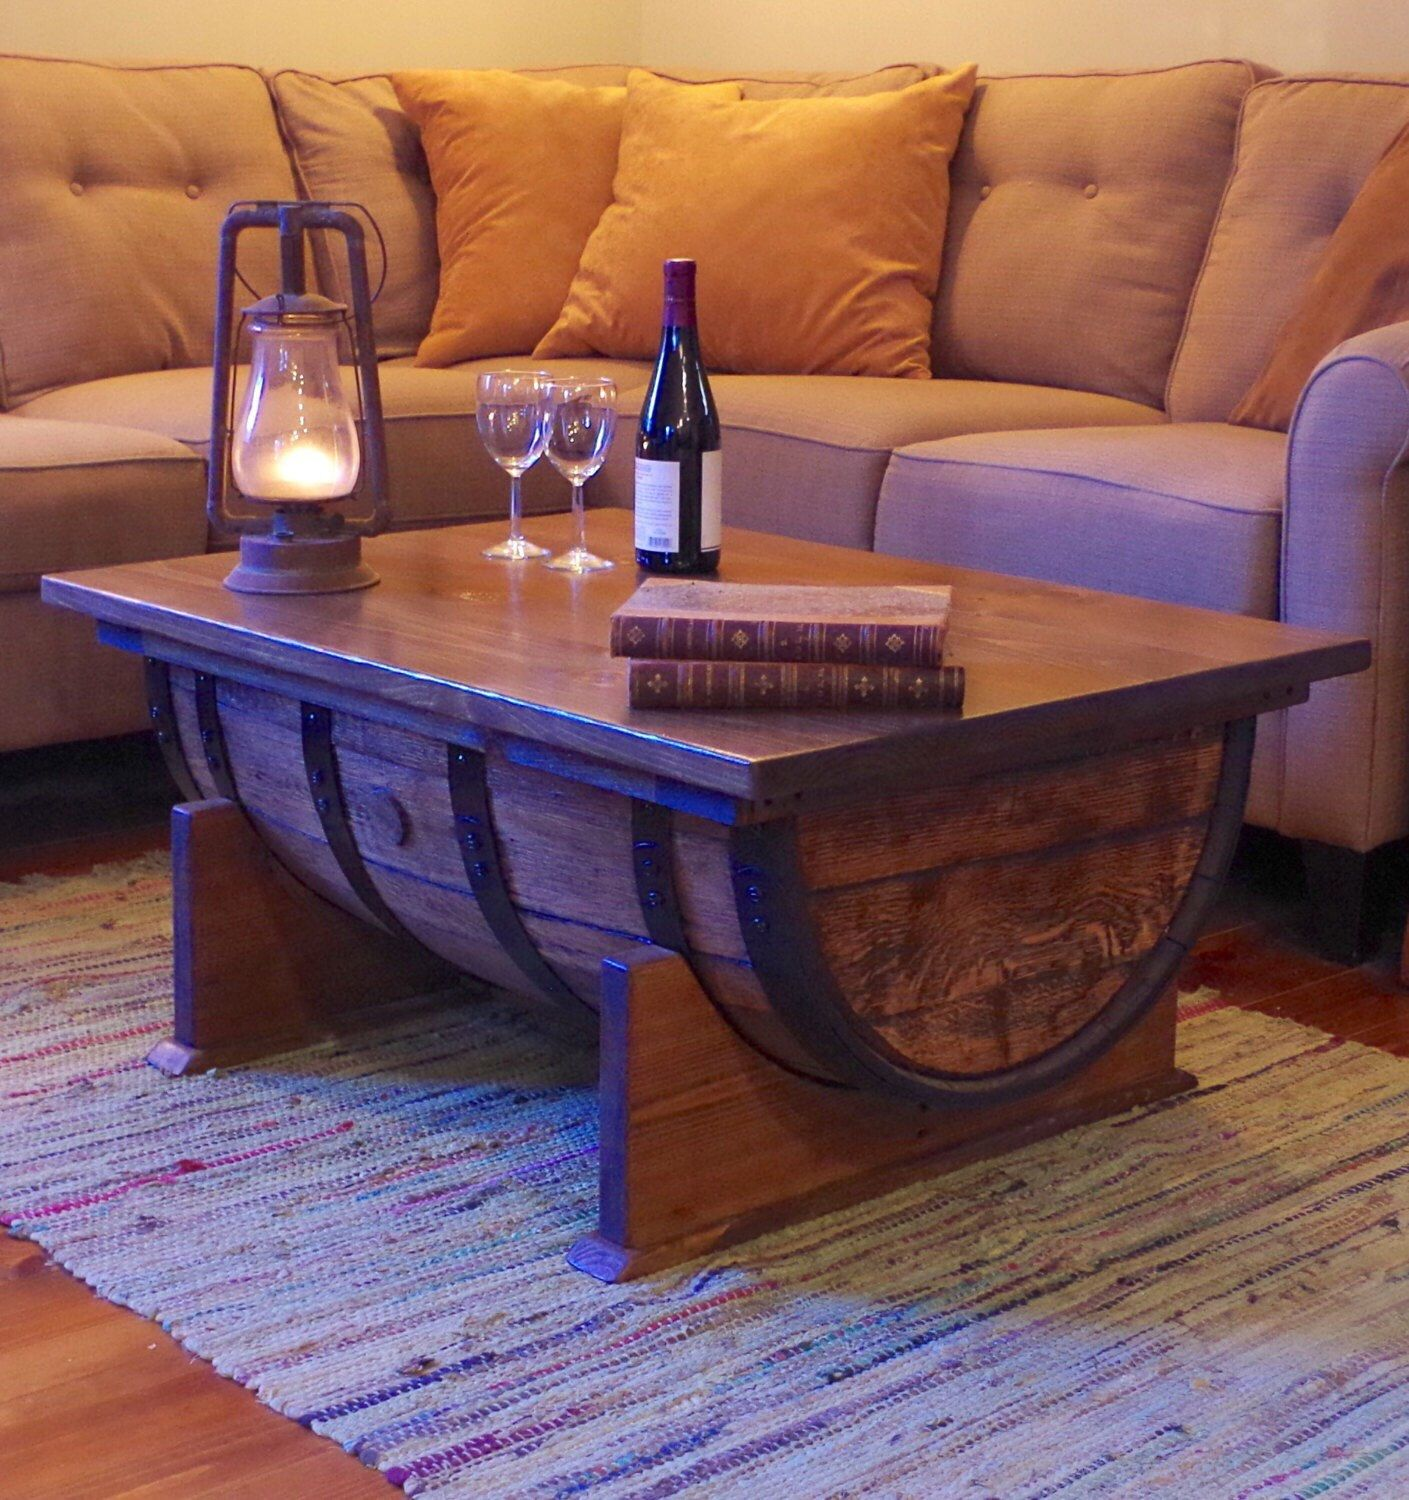 18 Incredible Handmade Barrel Furniture Designs Youll Simply Go